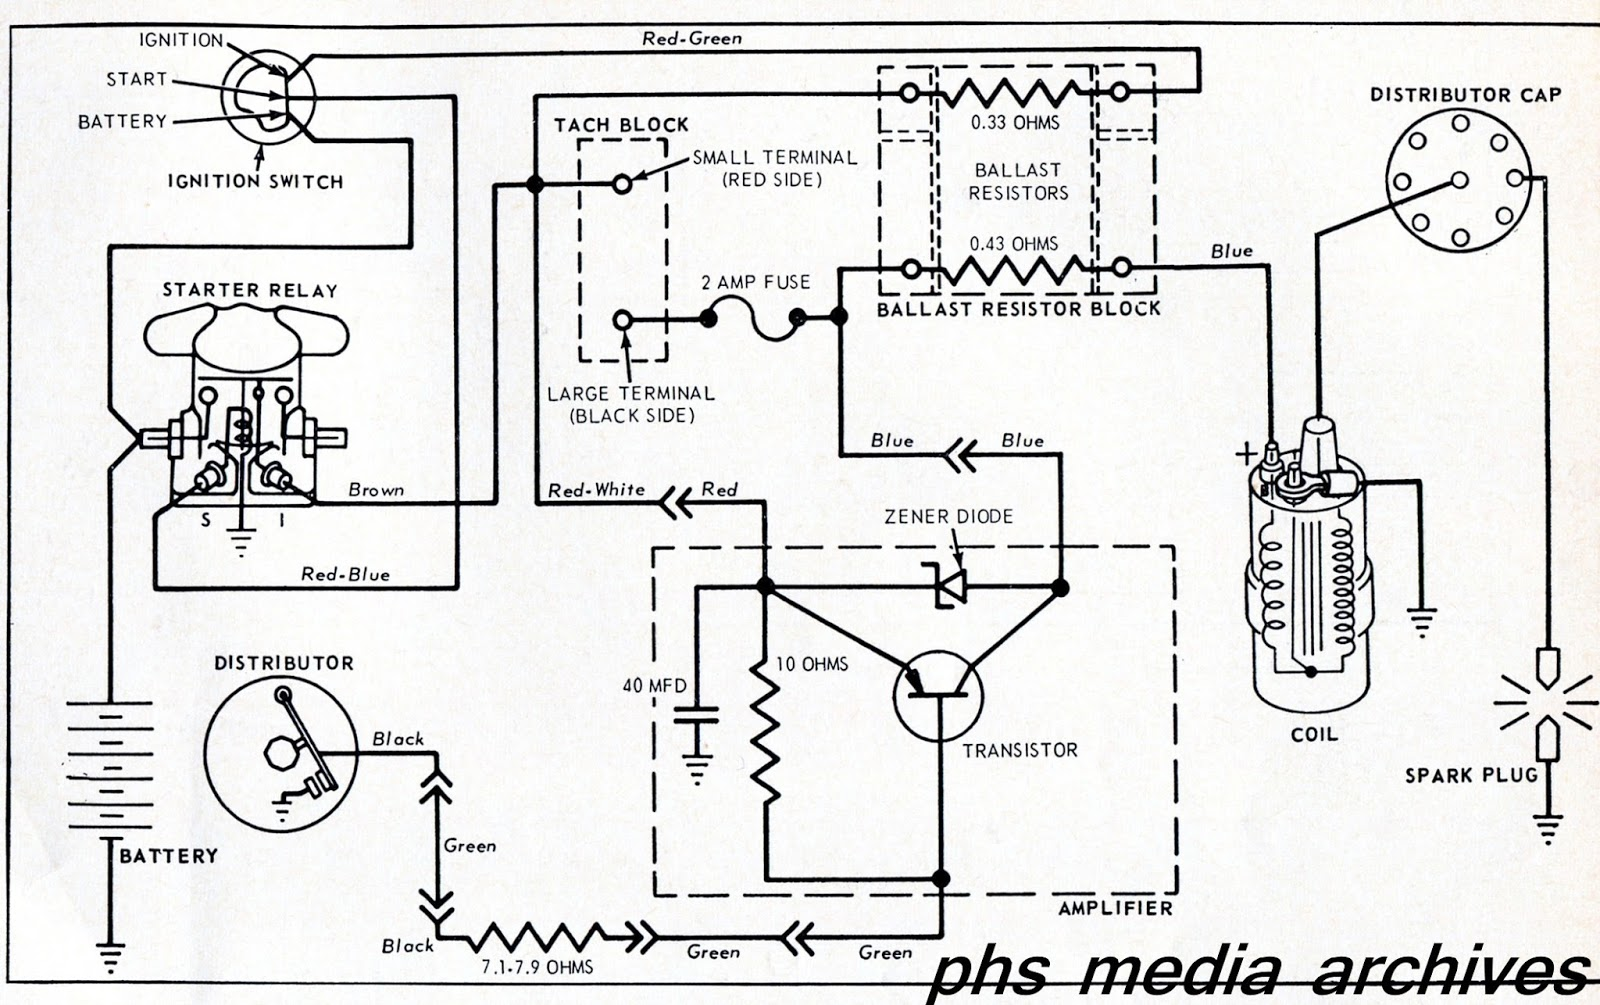 transistorized ignition system pdf